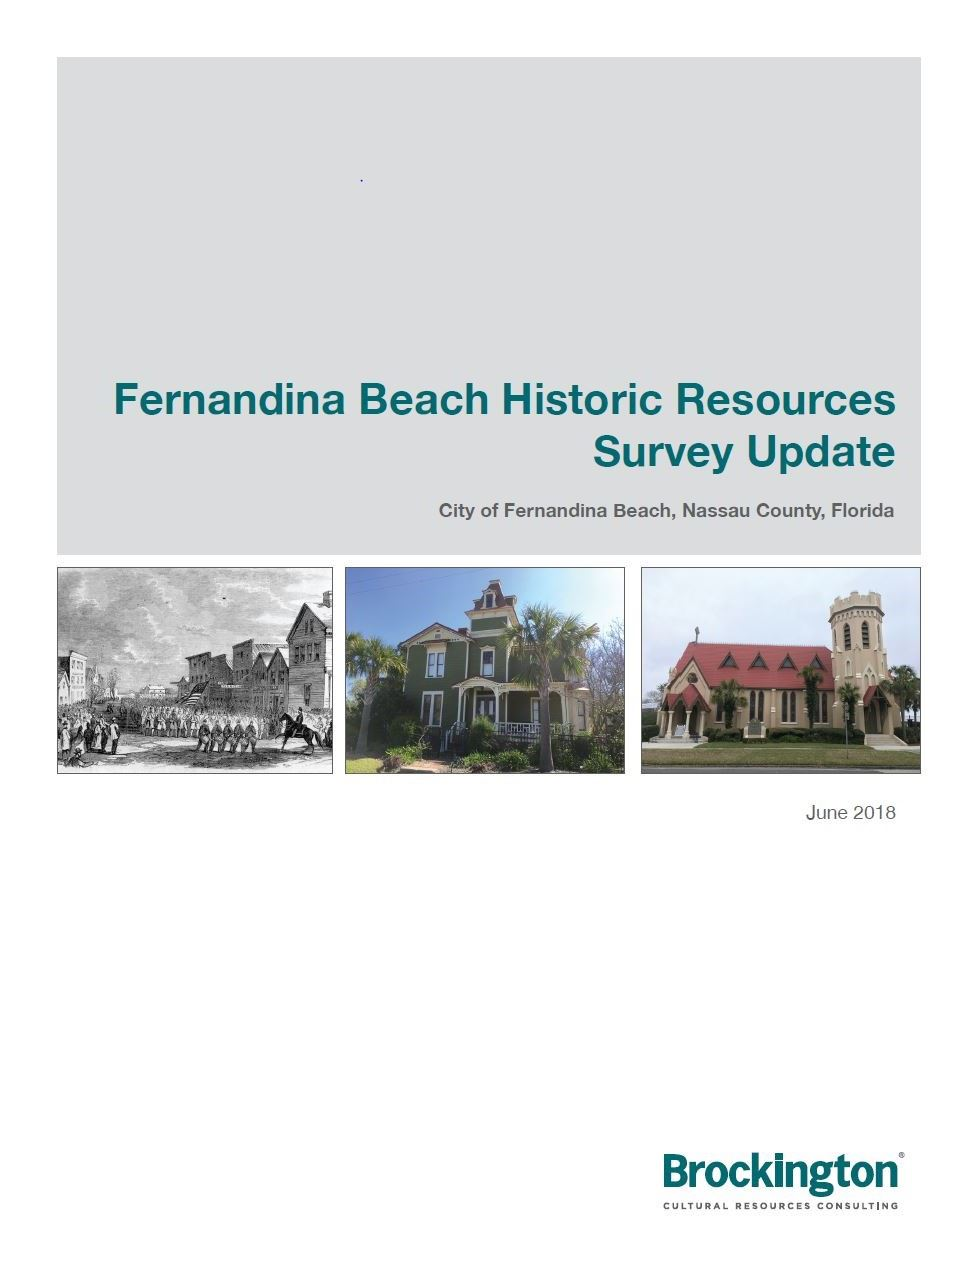 Historic Resources Survey Update Cover